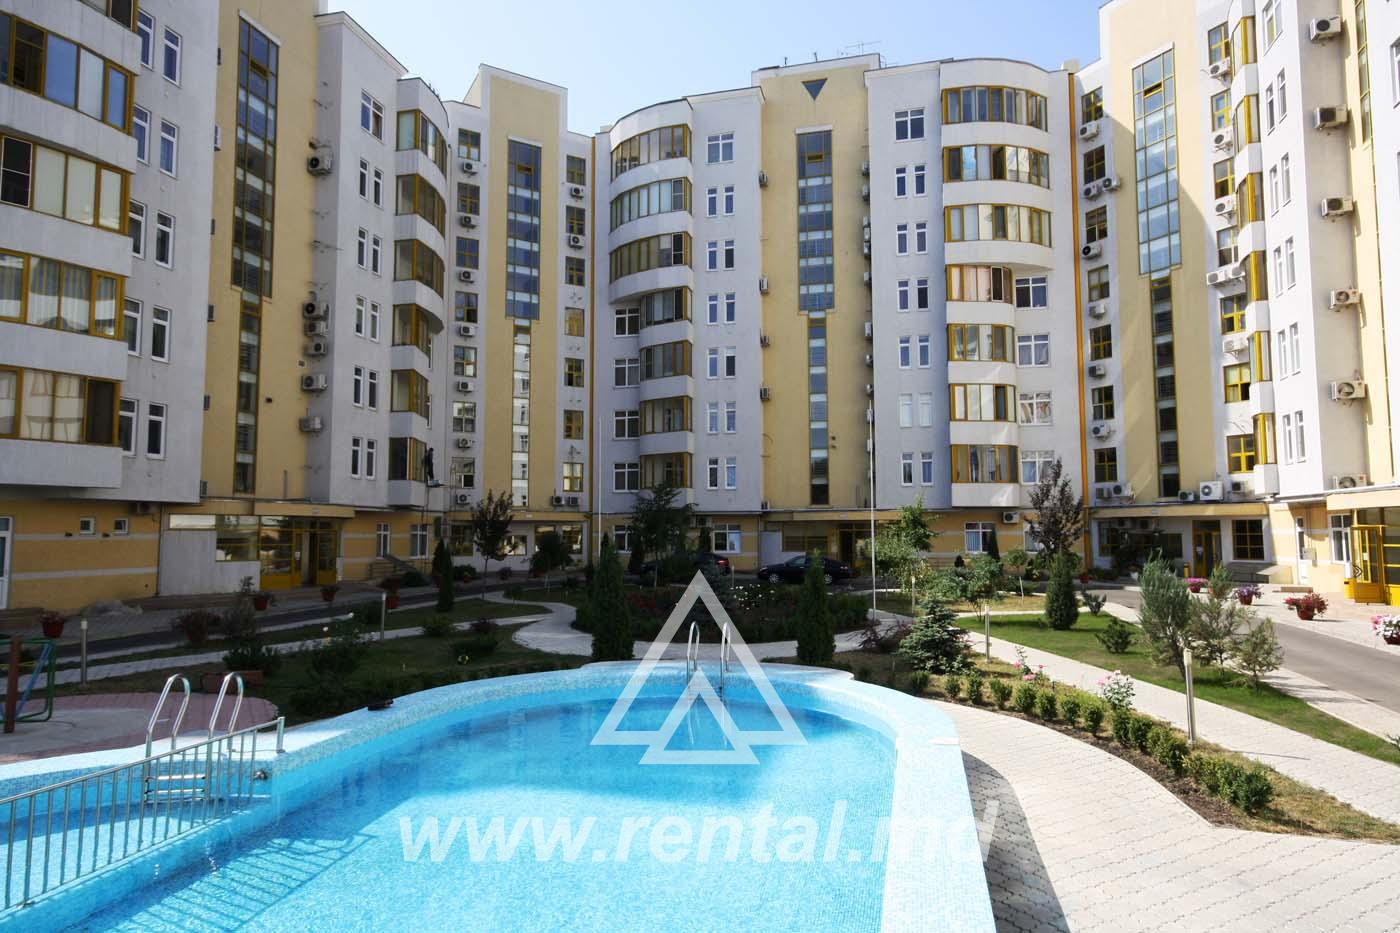 Apartment for rent in Lara city Chisinau